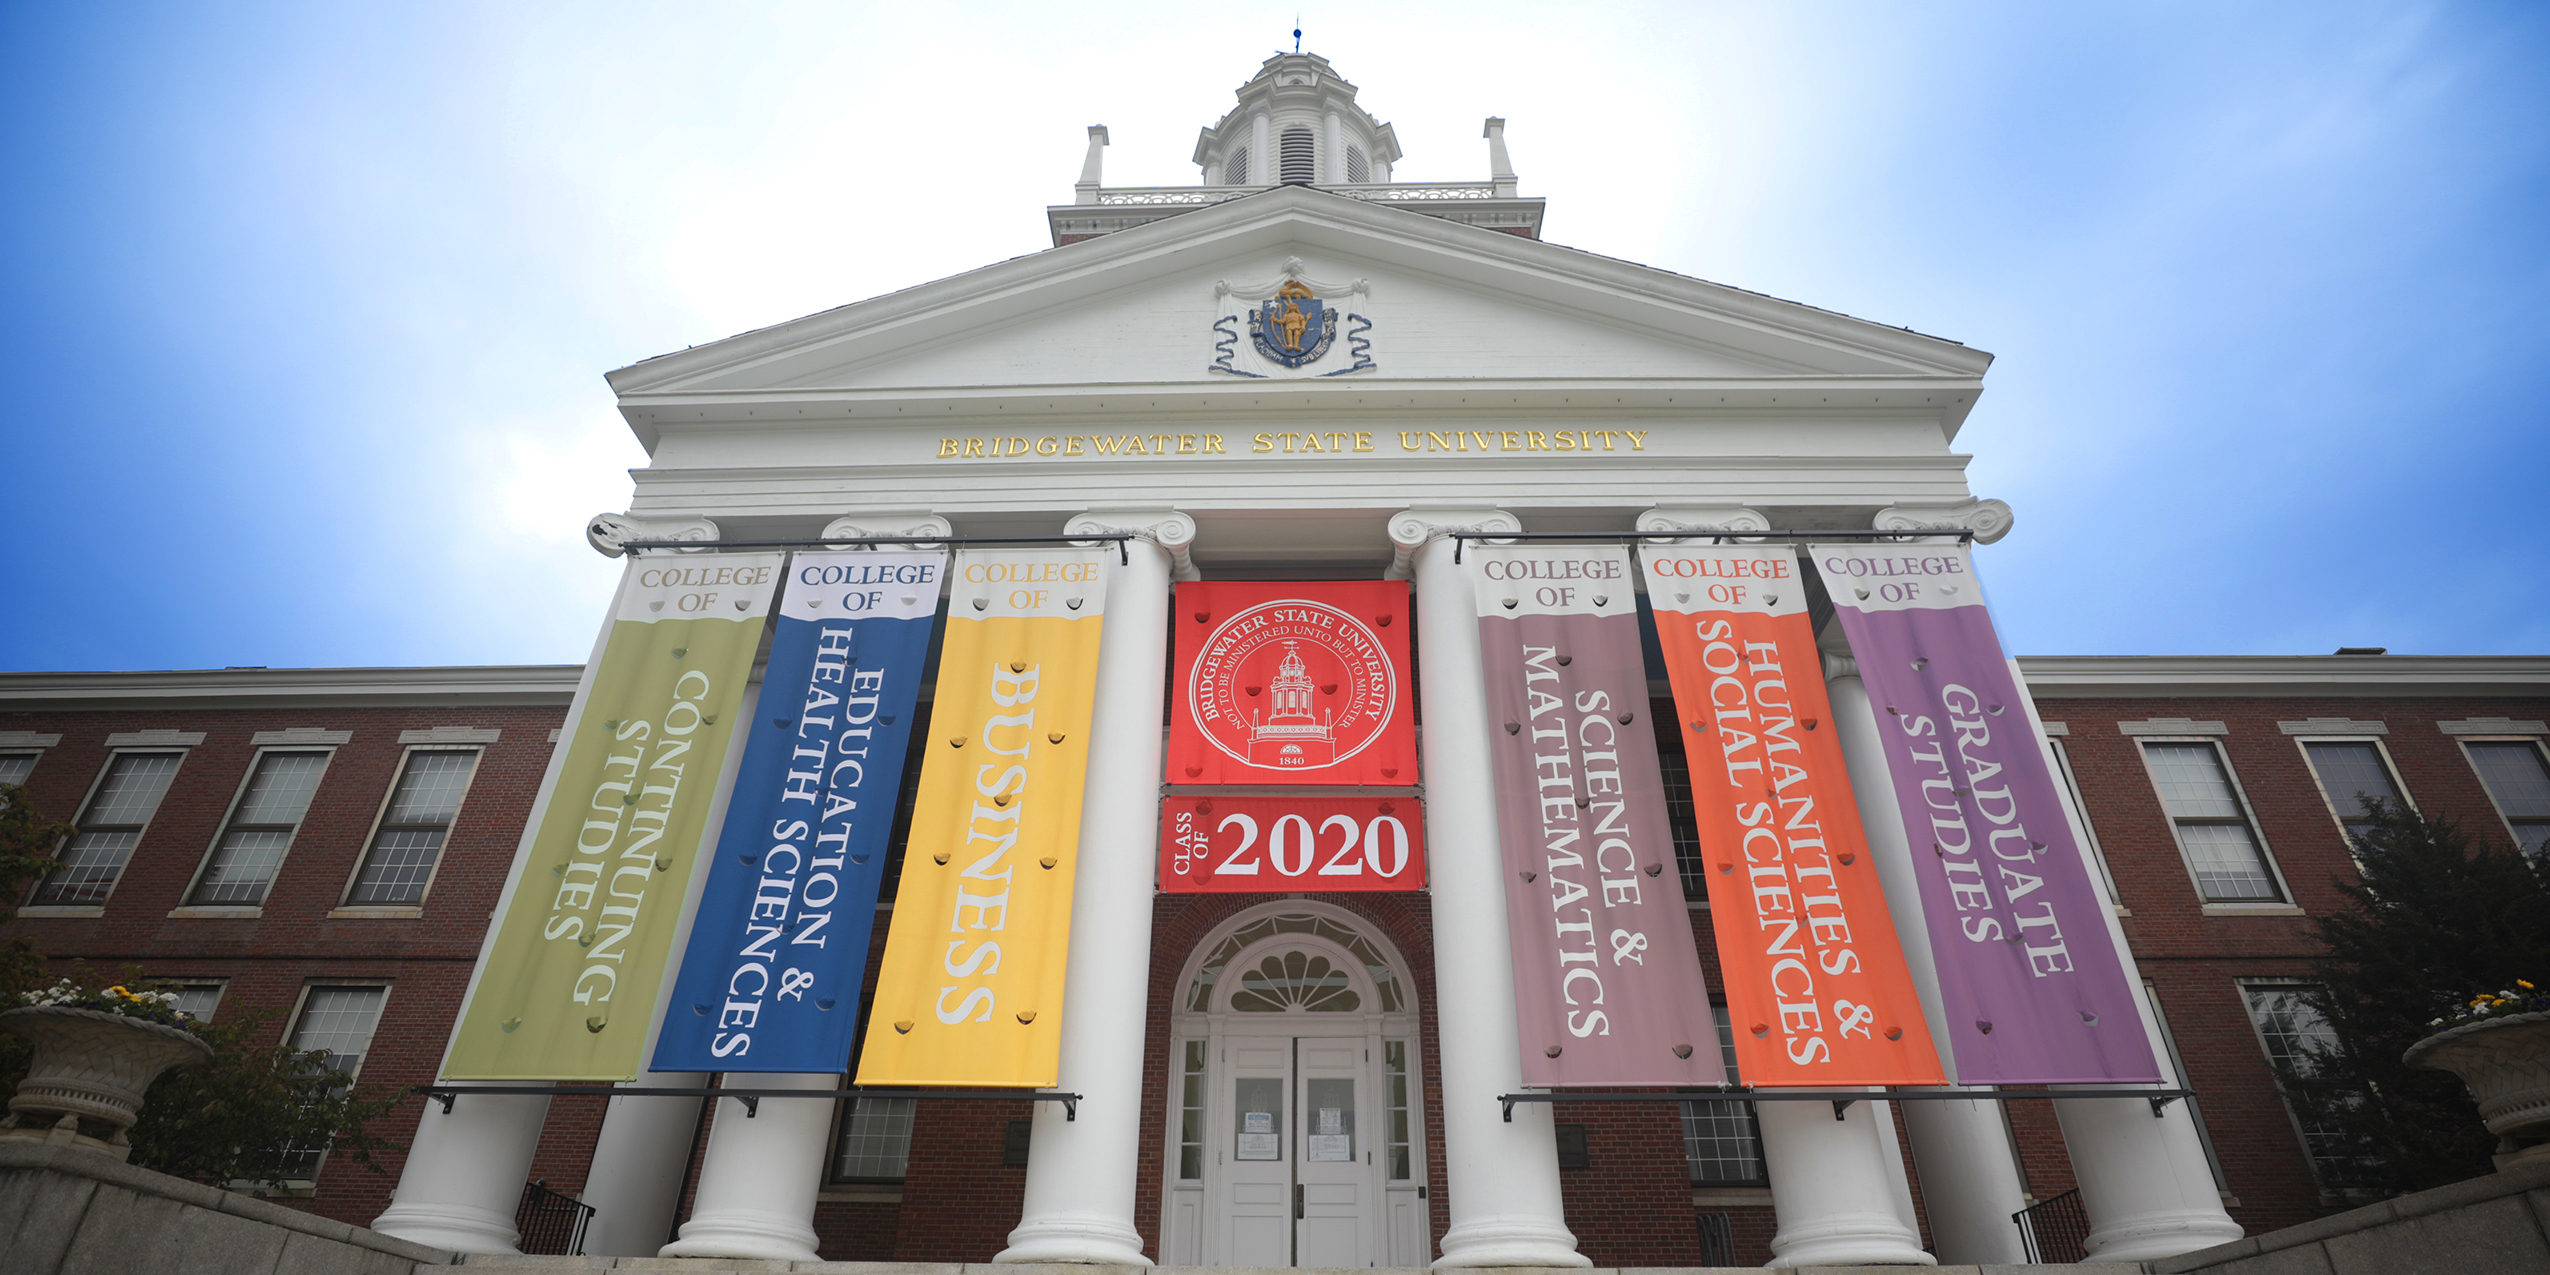 Boyden Hall with Class of 2020 banners